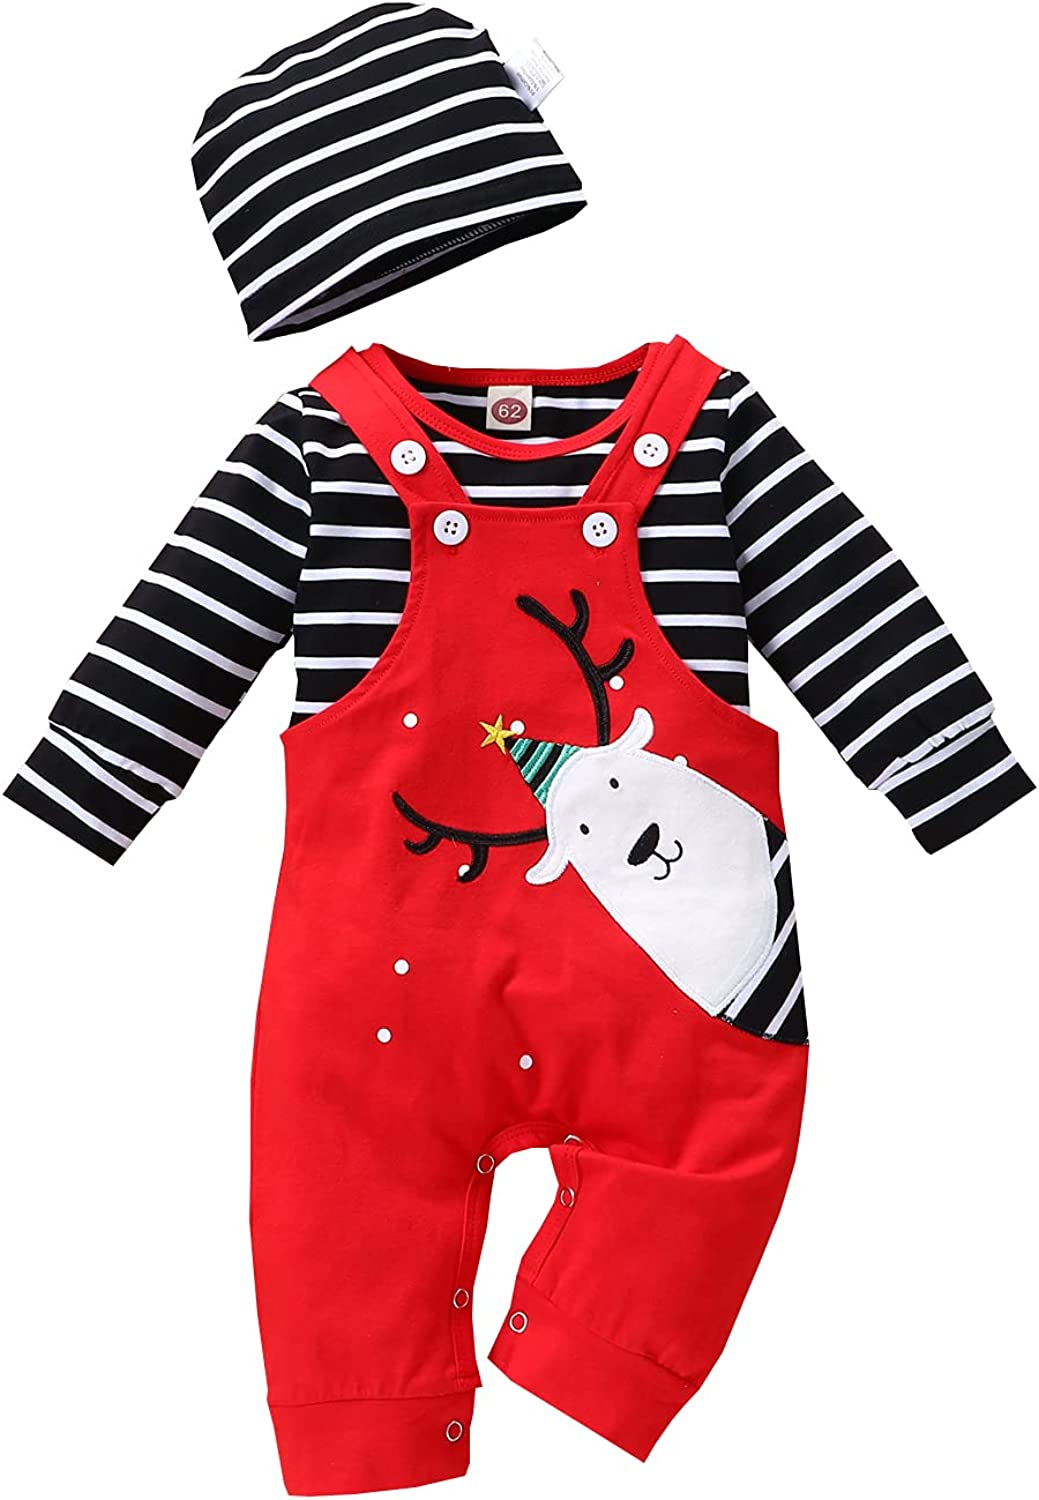 Baby Boys Girls Christmas Pant Set 3pcs Overalls Reindeer Suspender Pants Fall Winter Outfit Set Twins 1st Christmas